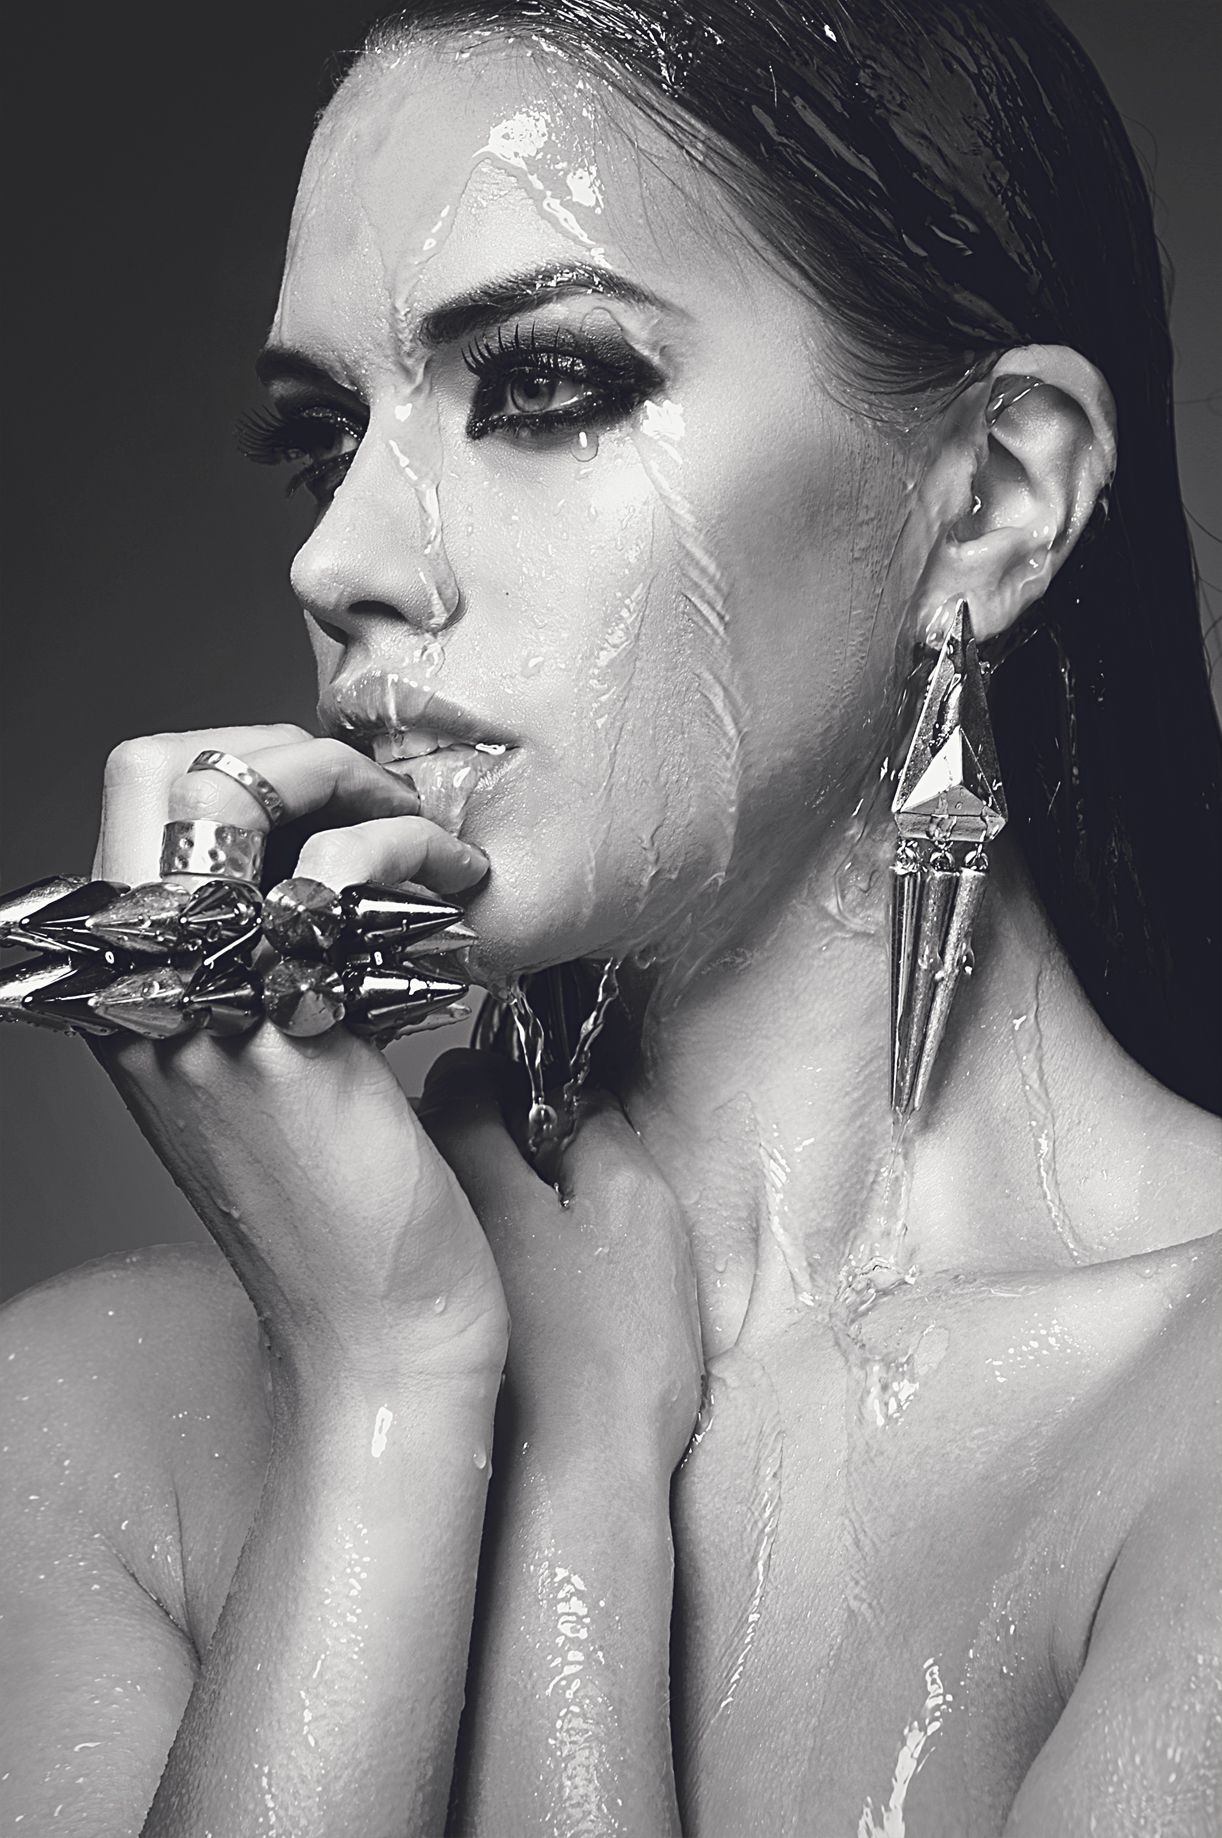 Urban decay urbandecay wet water model drenched soaked beautiful bw blackwhite black white jewellery waterproof makeup